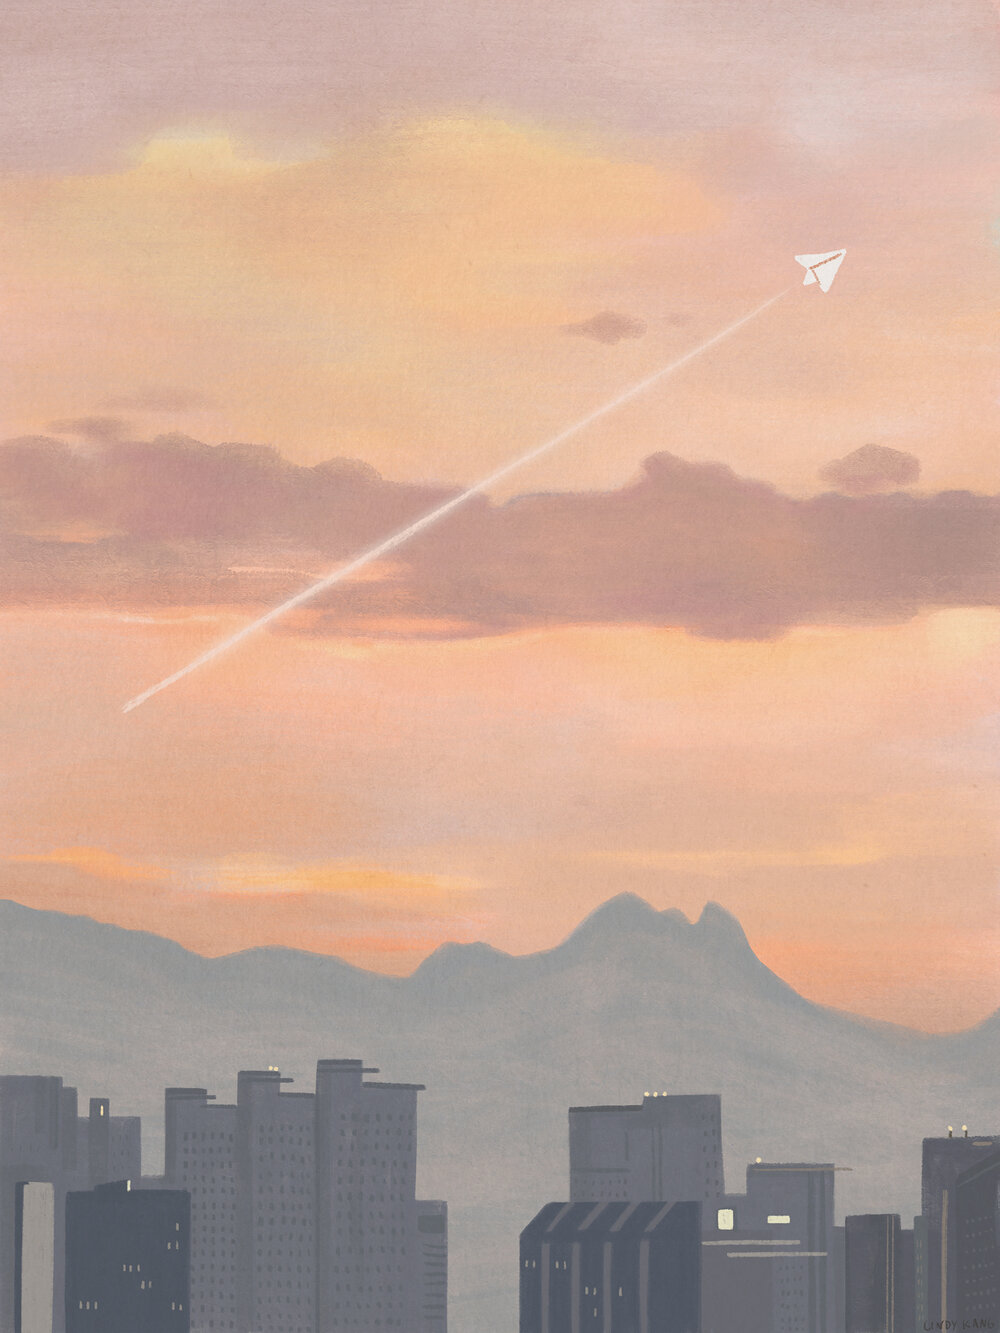 Illustration of a paper plane fly across an evening sky.